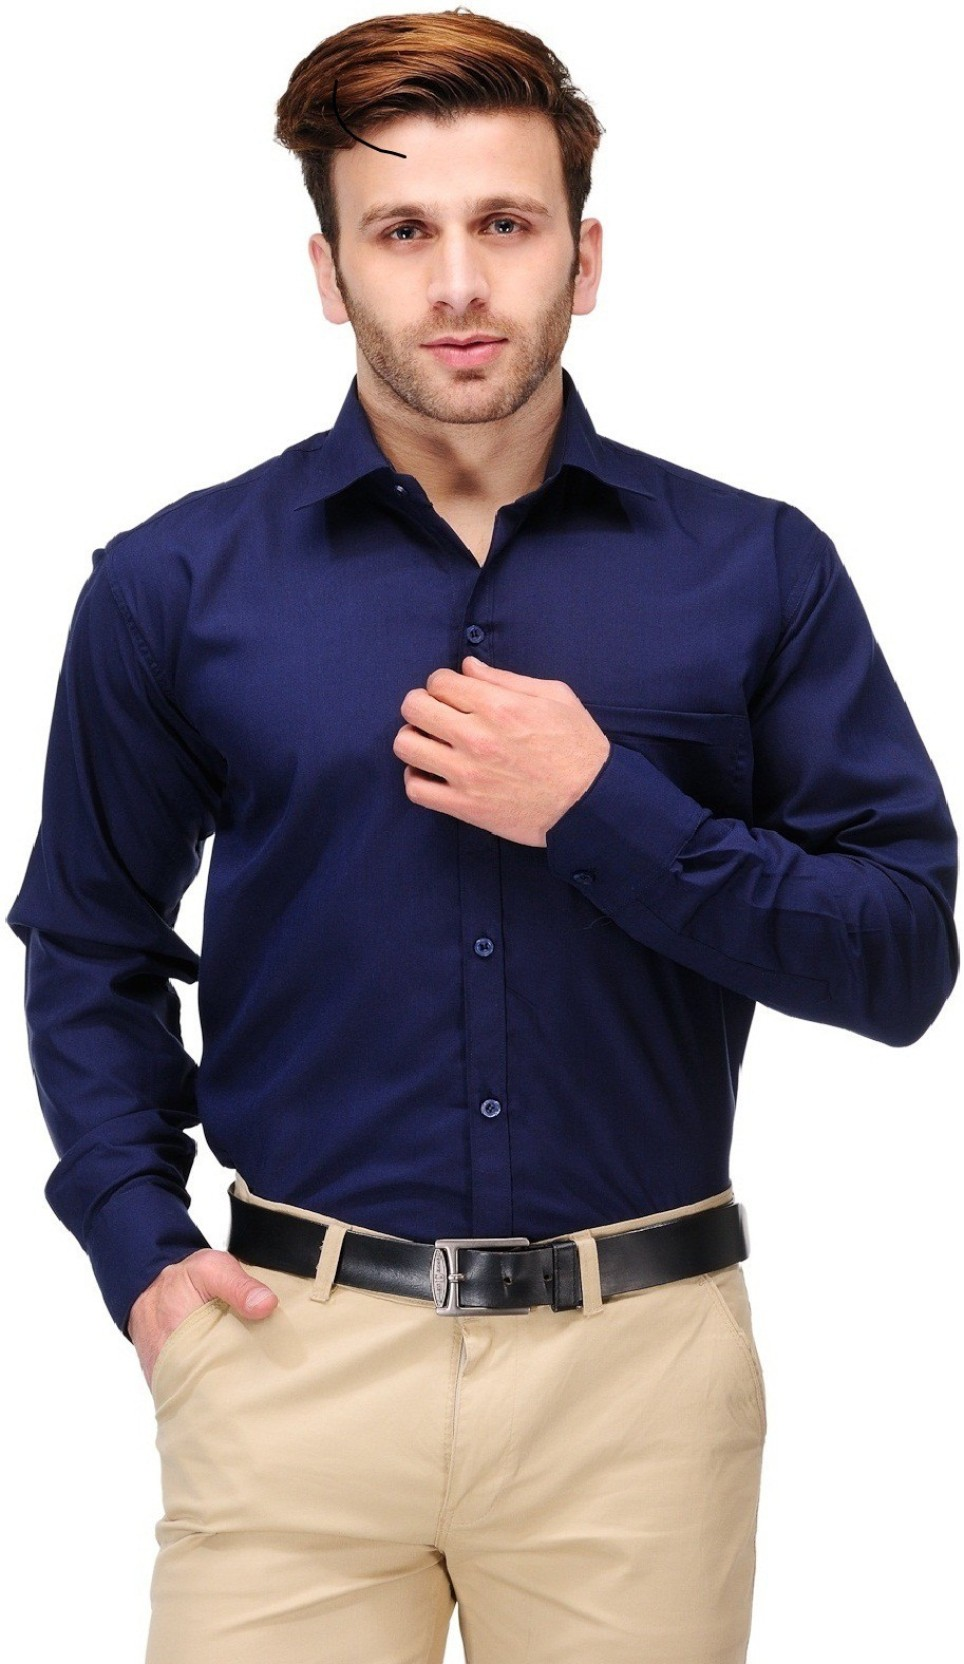 koolpals men solid formal blue shirt buy navy blue